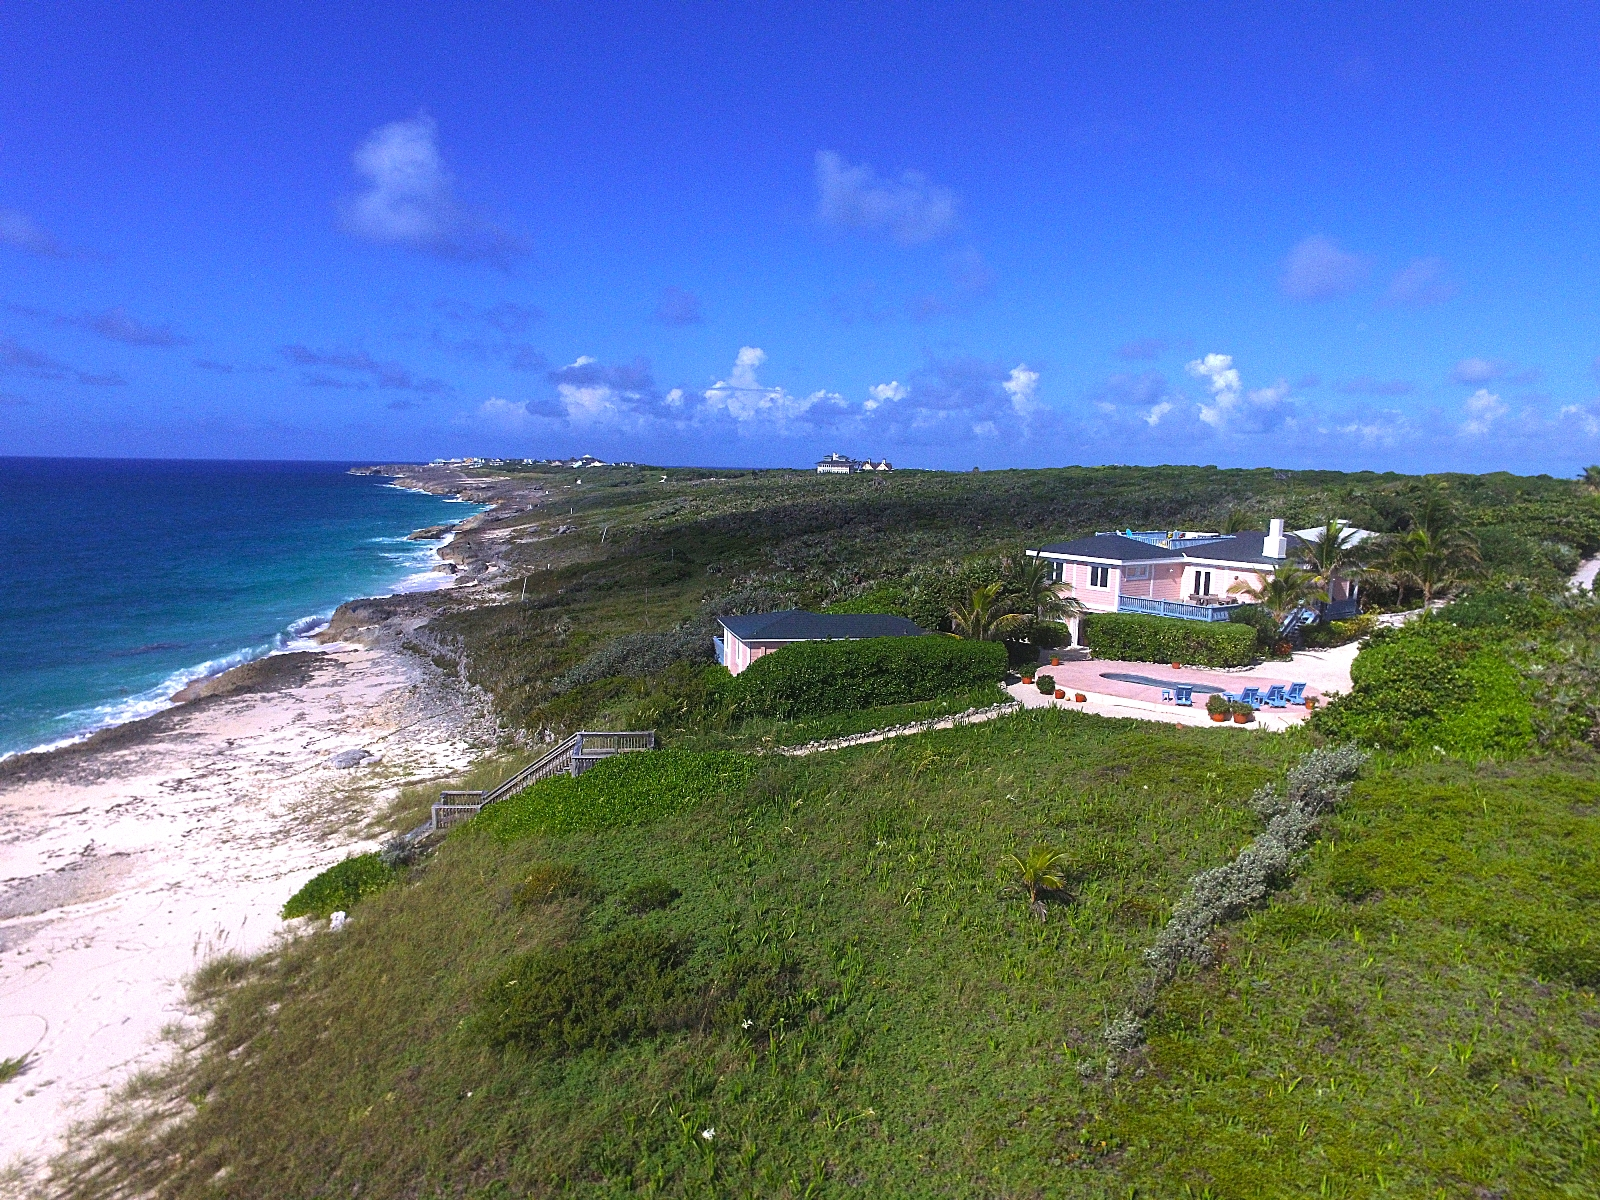 独户住宅 为 销售 在 Walking Stick, a 2.2.Acre Atlantic Estate at The Abaco Club on Winding Bay MLS-27717 阿巴科, 巴哈马